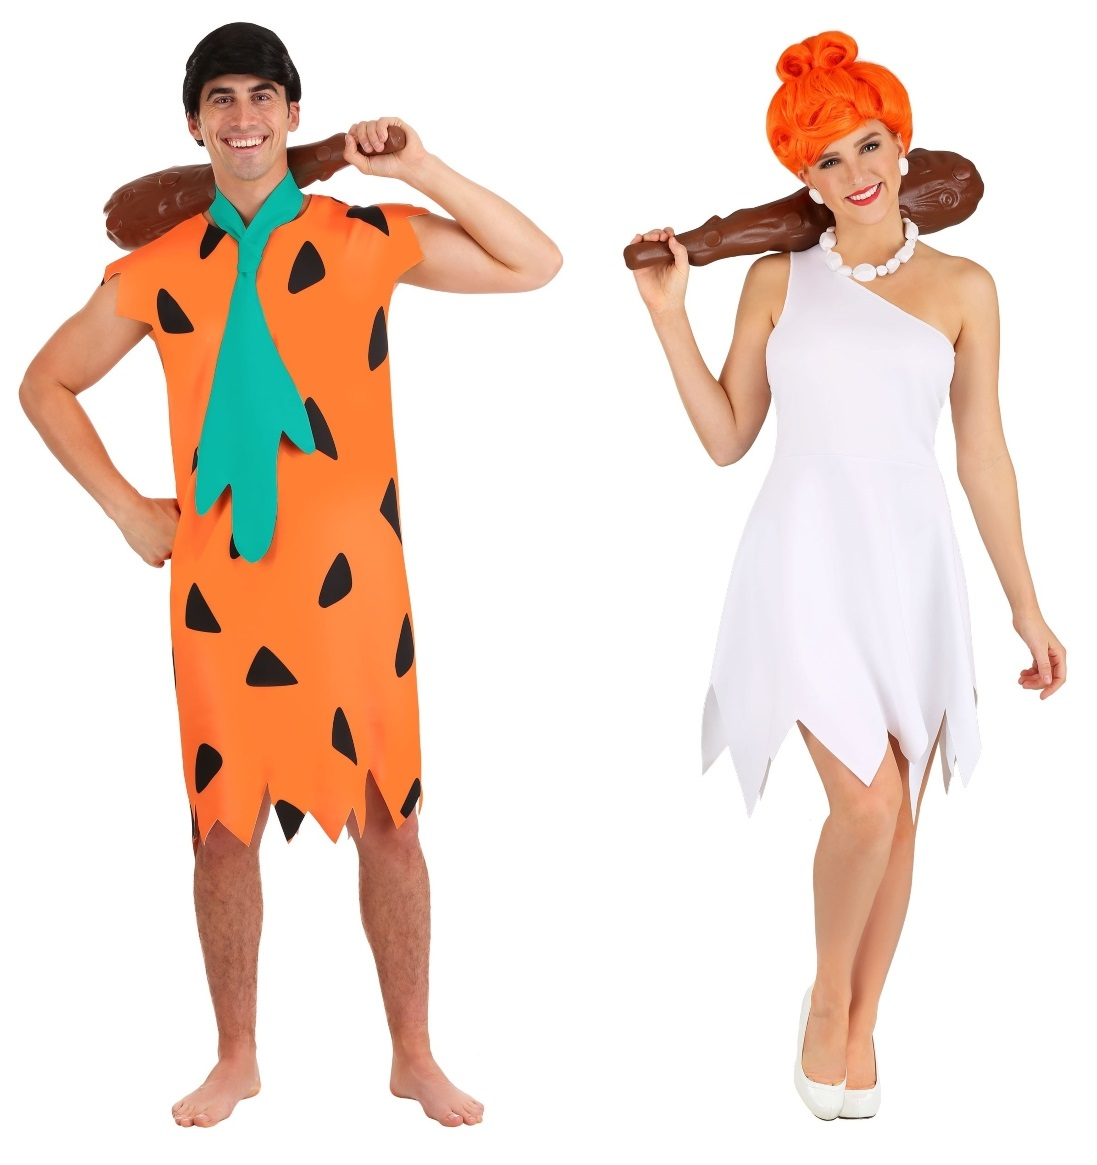 Fred and Wilma Couples Costume